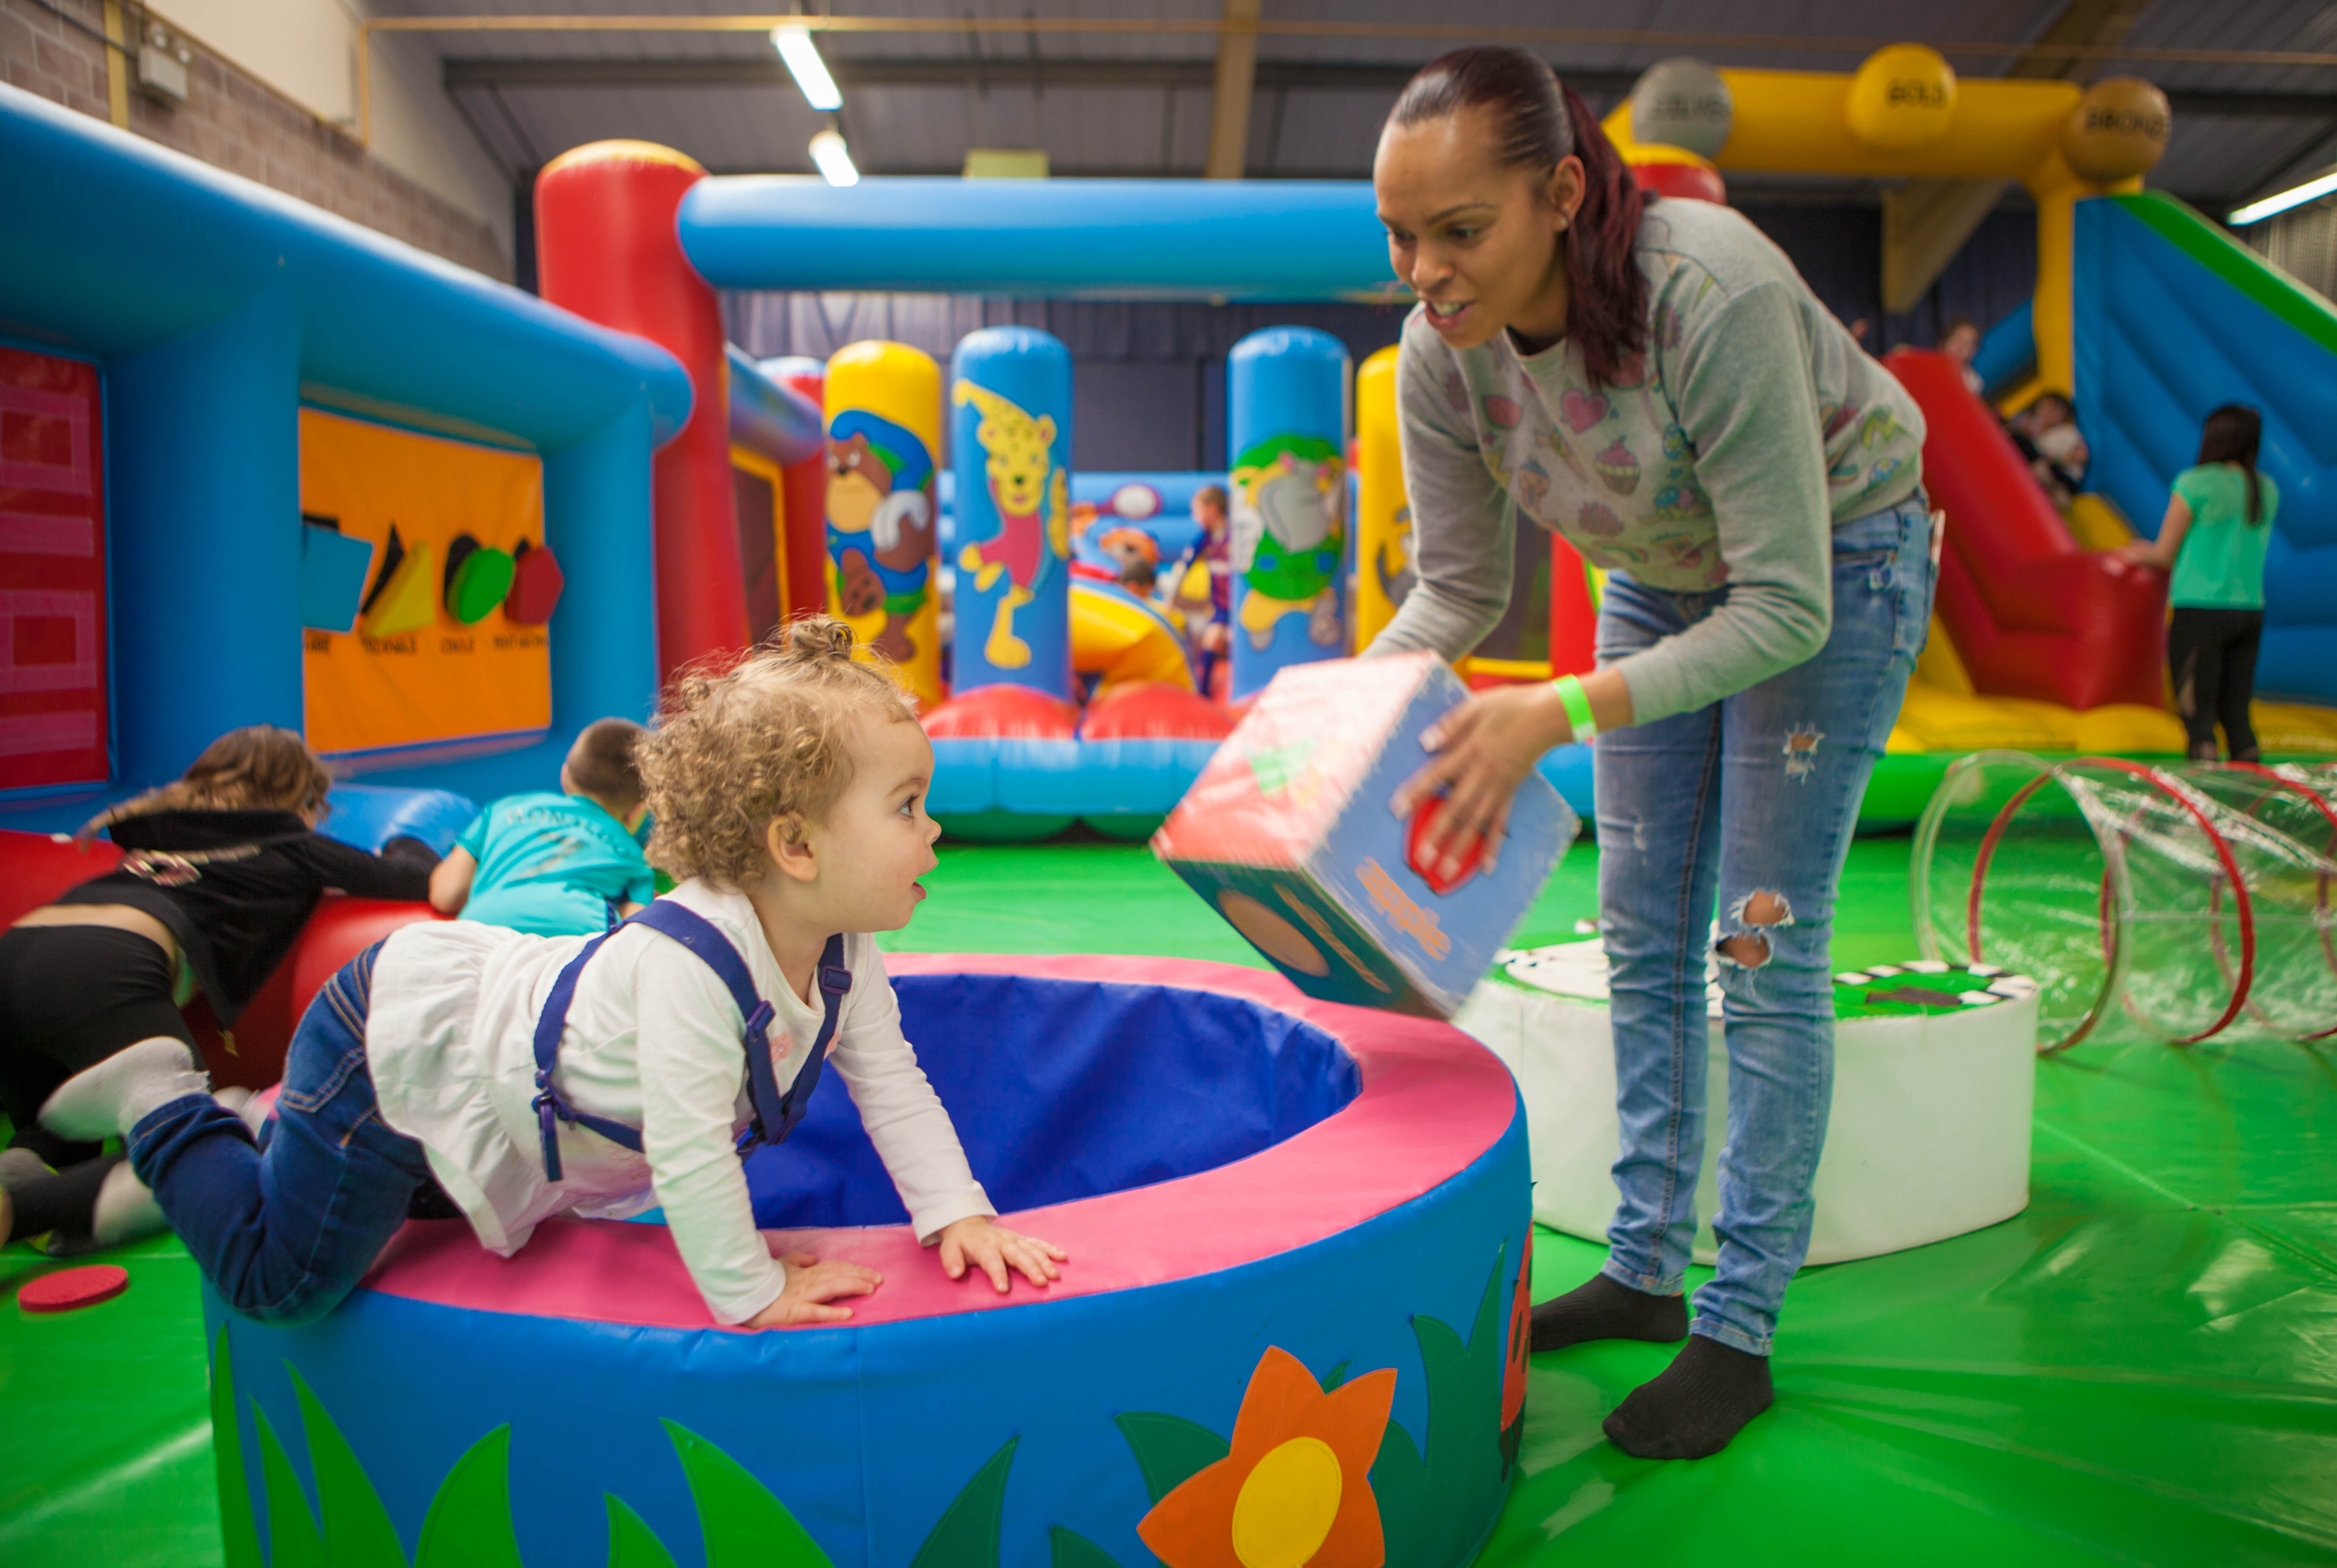 Young child climbing on softplay equipment as parent watches on